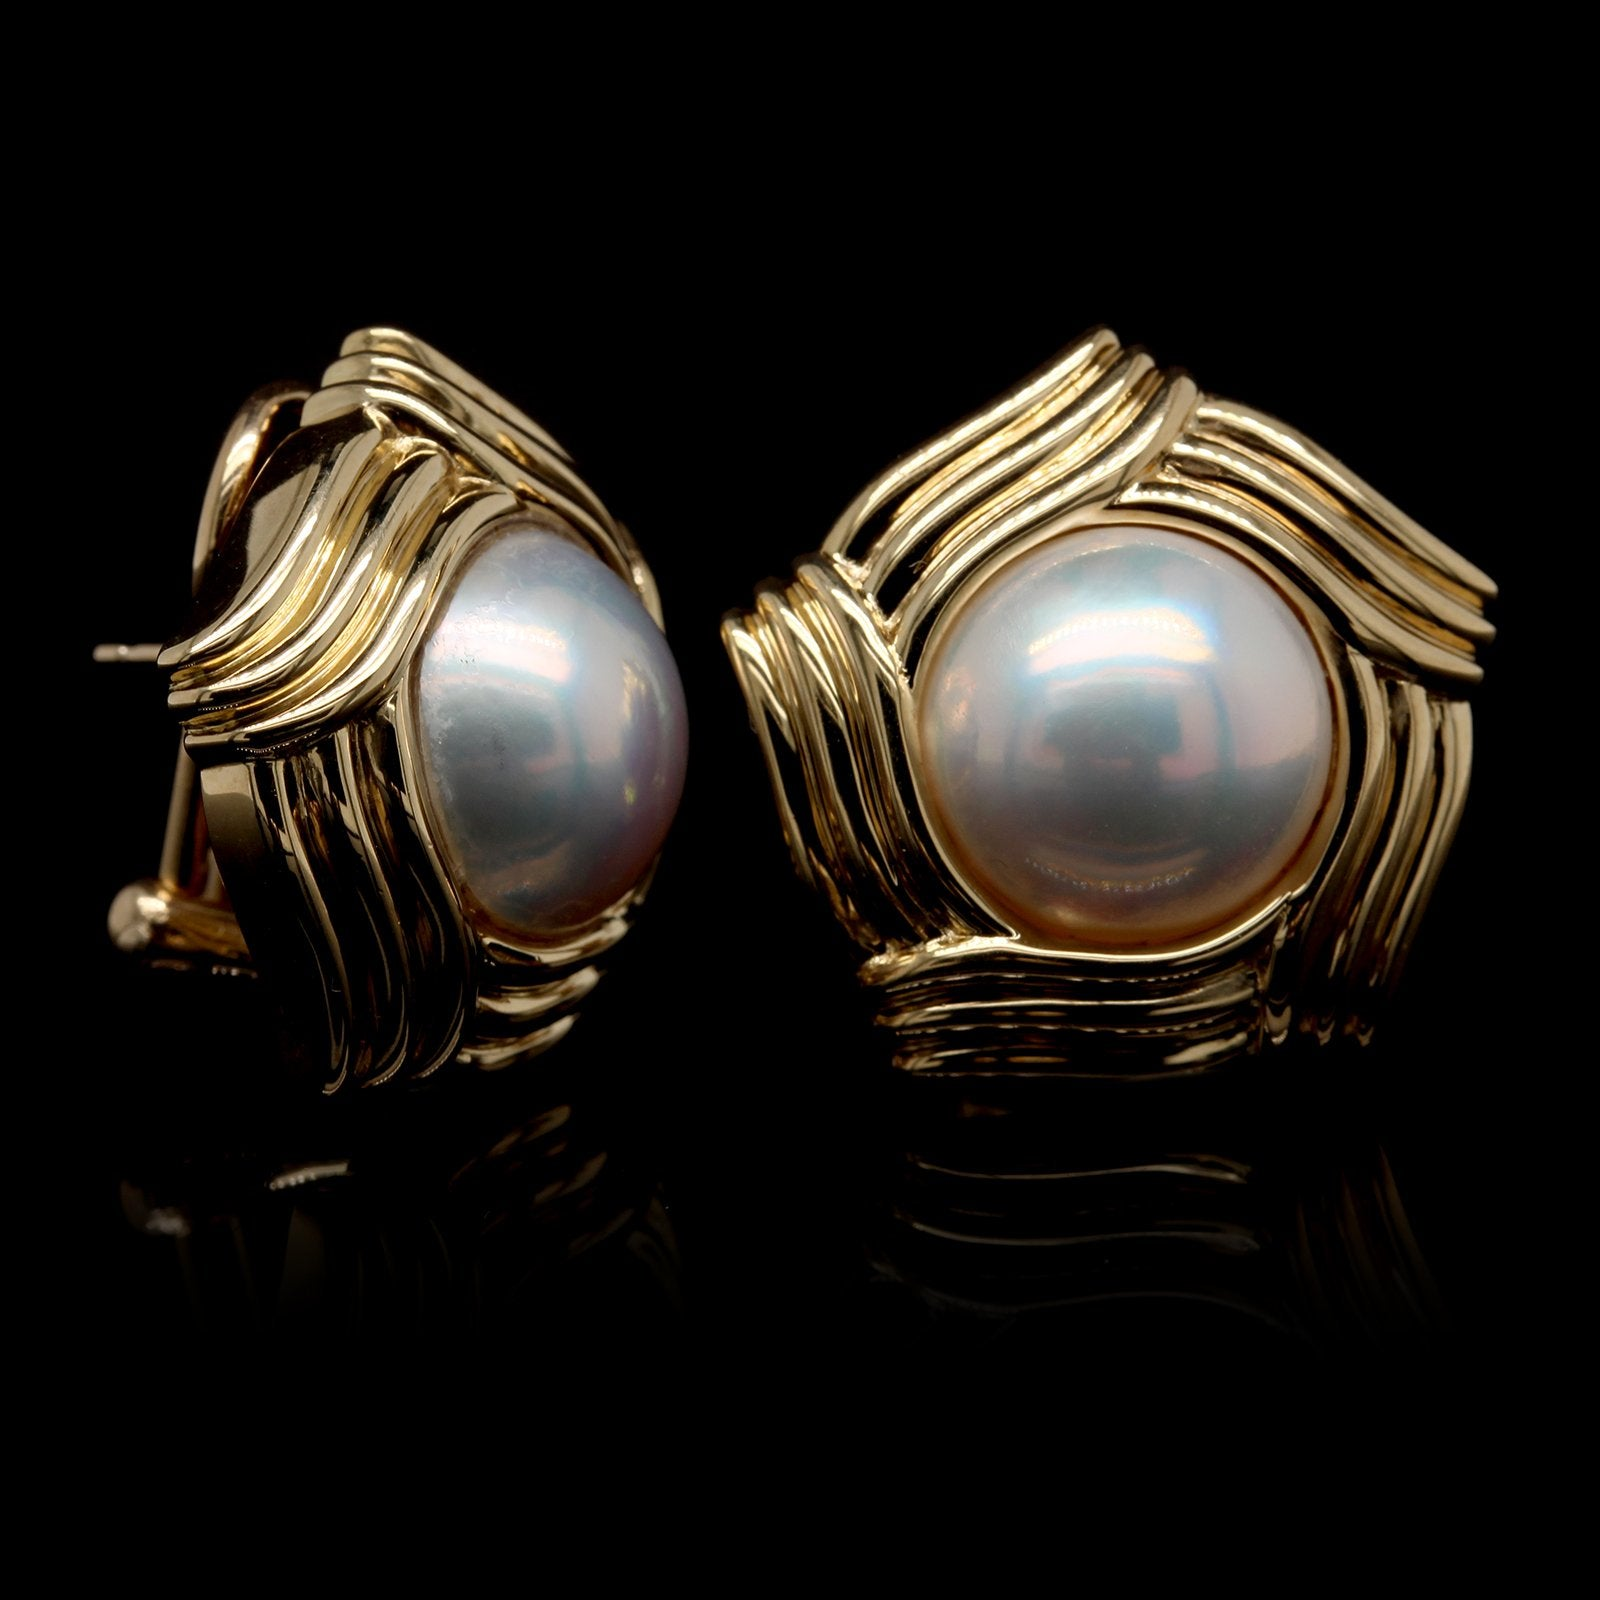 18K Yellow Gold Estate Cultured Mabe Pearl Earrings